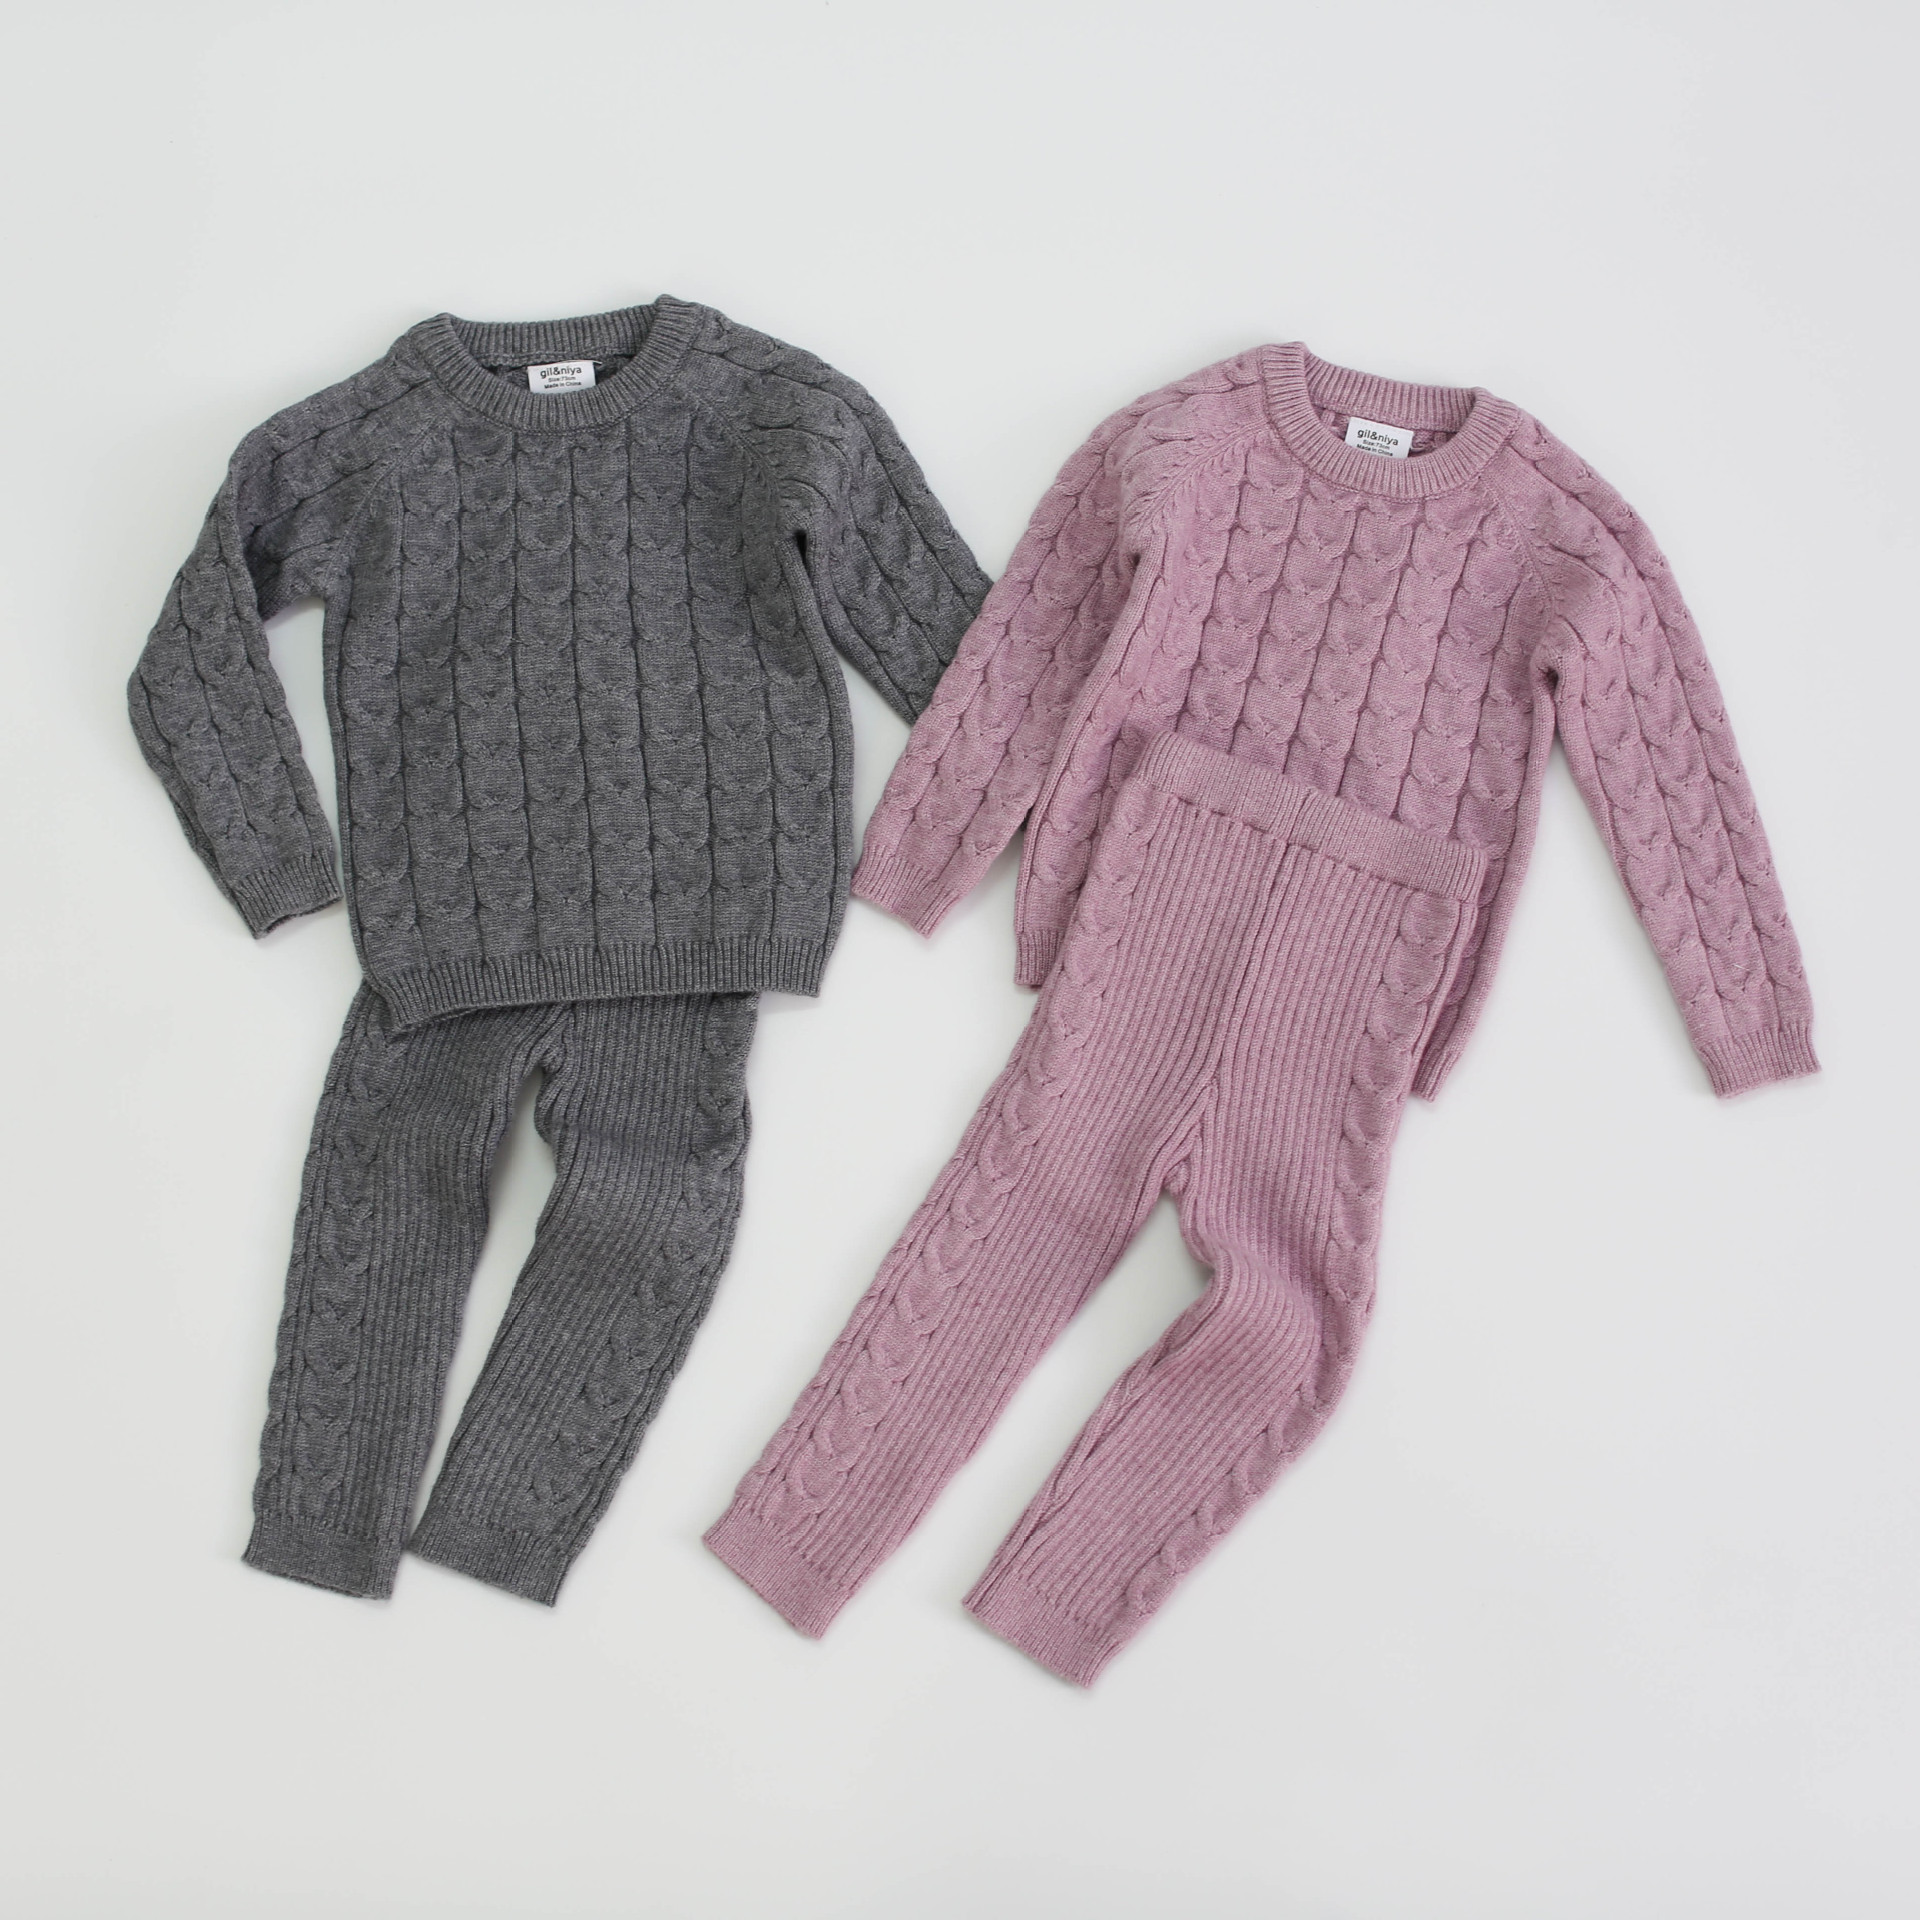 Baby Girls Boys Knit Suit toddler children Clothing Sets Winter knitting Pullover Sweater+Pants Infant kids Tracksuits pink gray 1